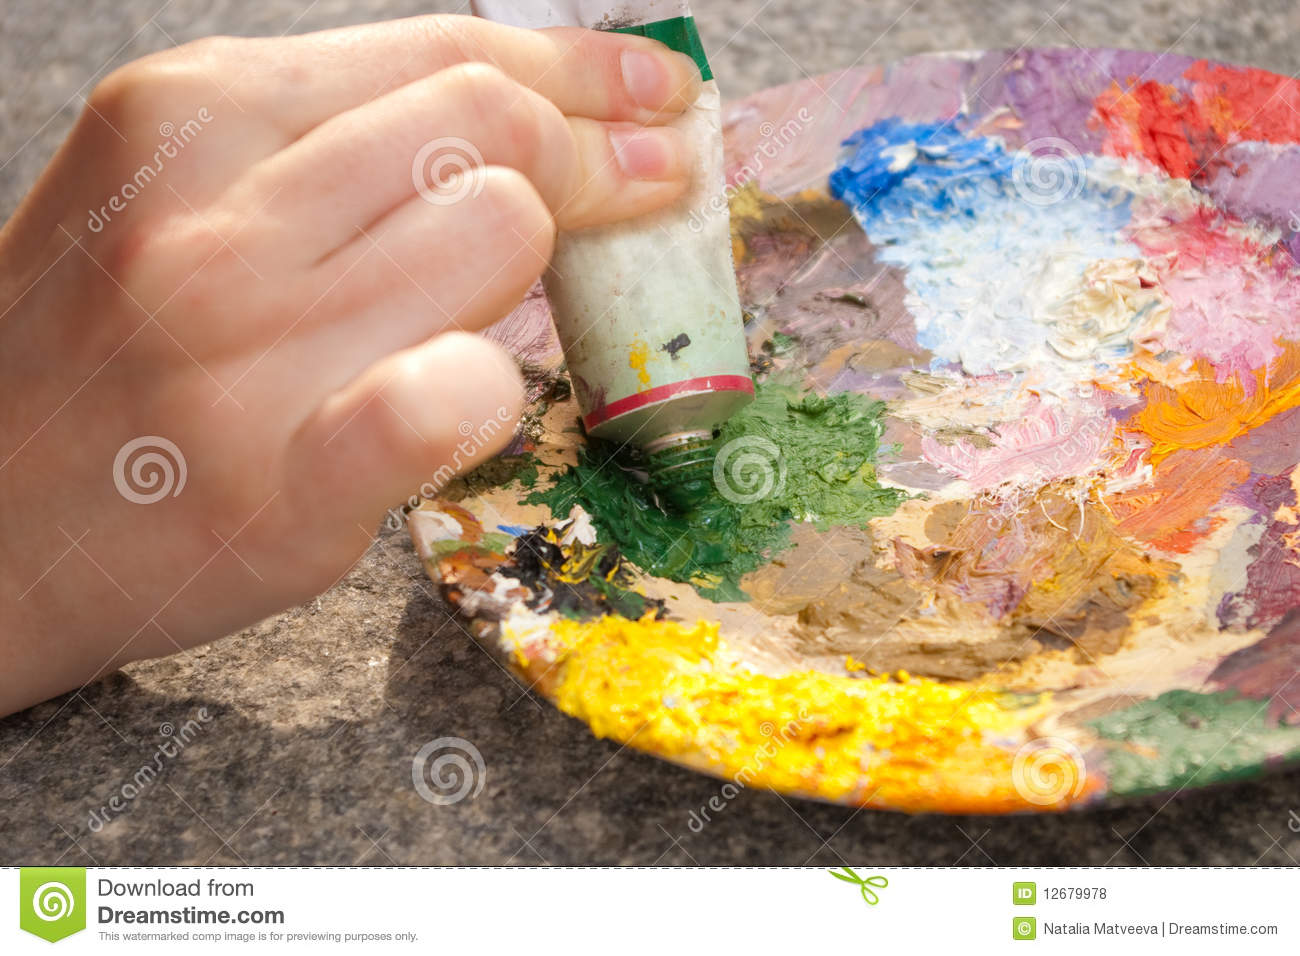 Hand squeezing green oilpaint on palette